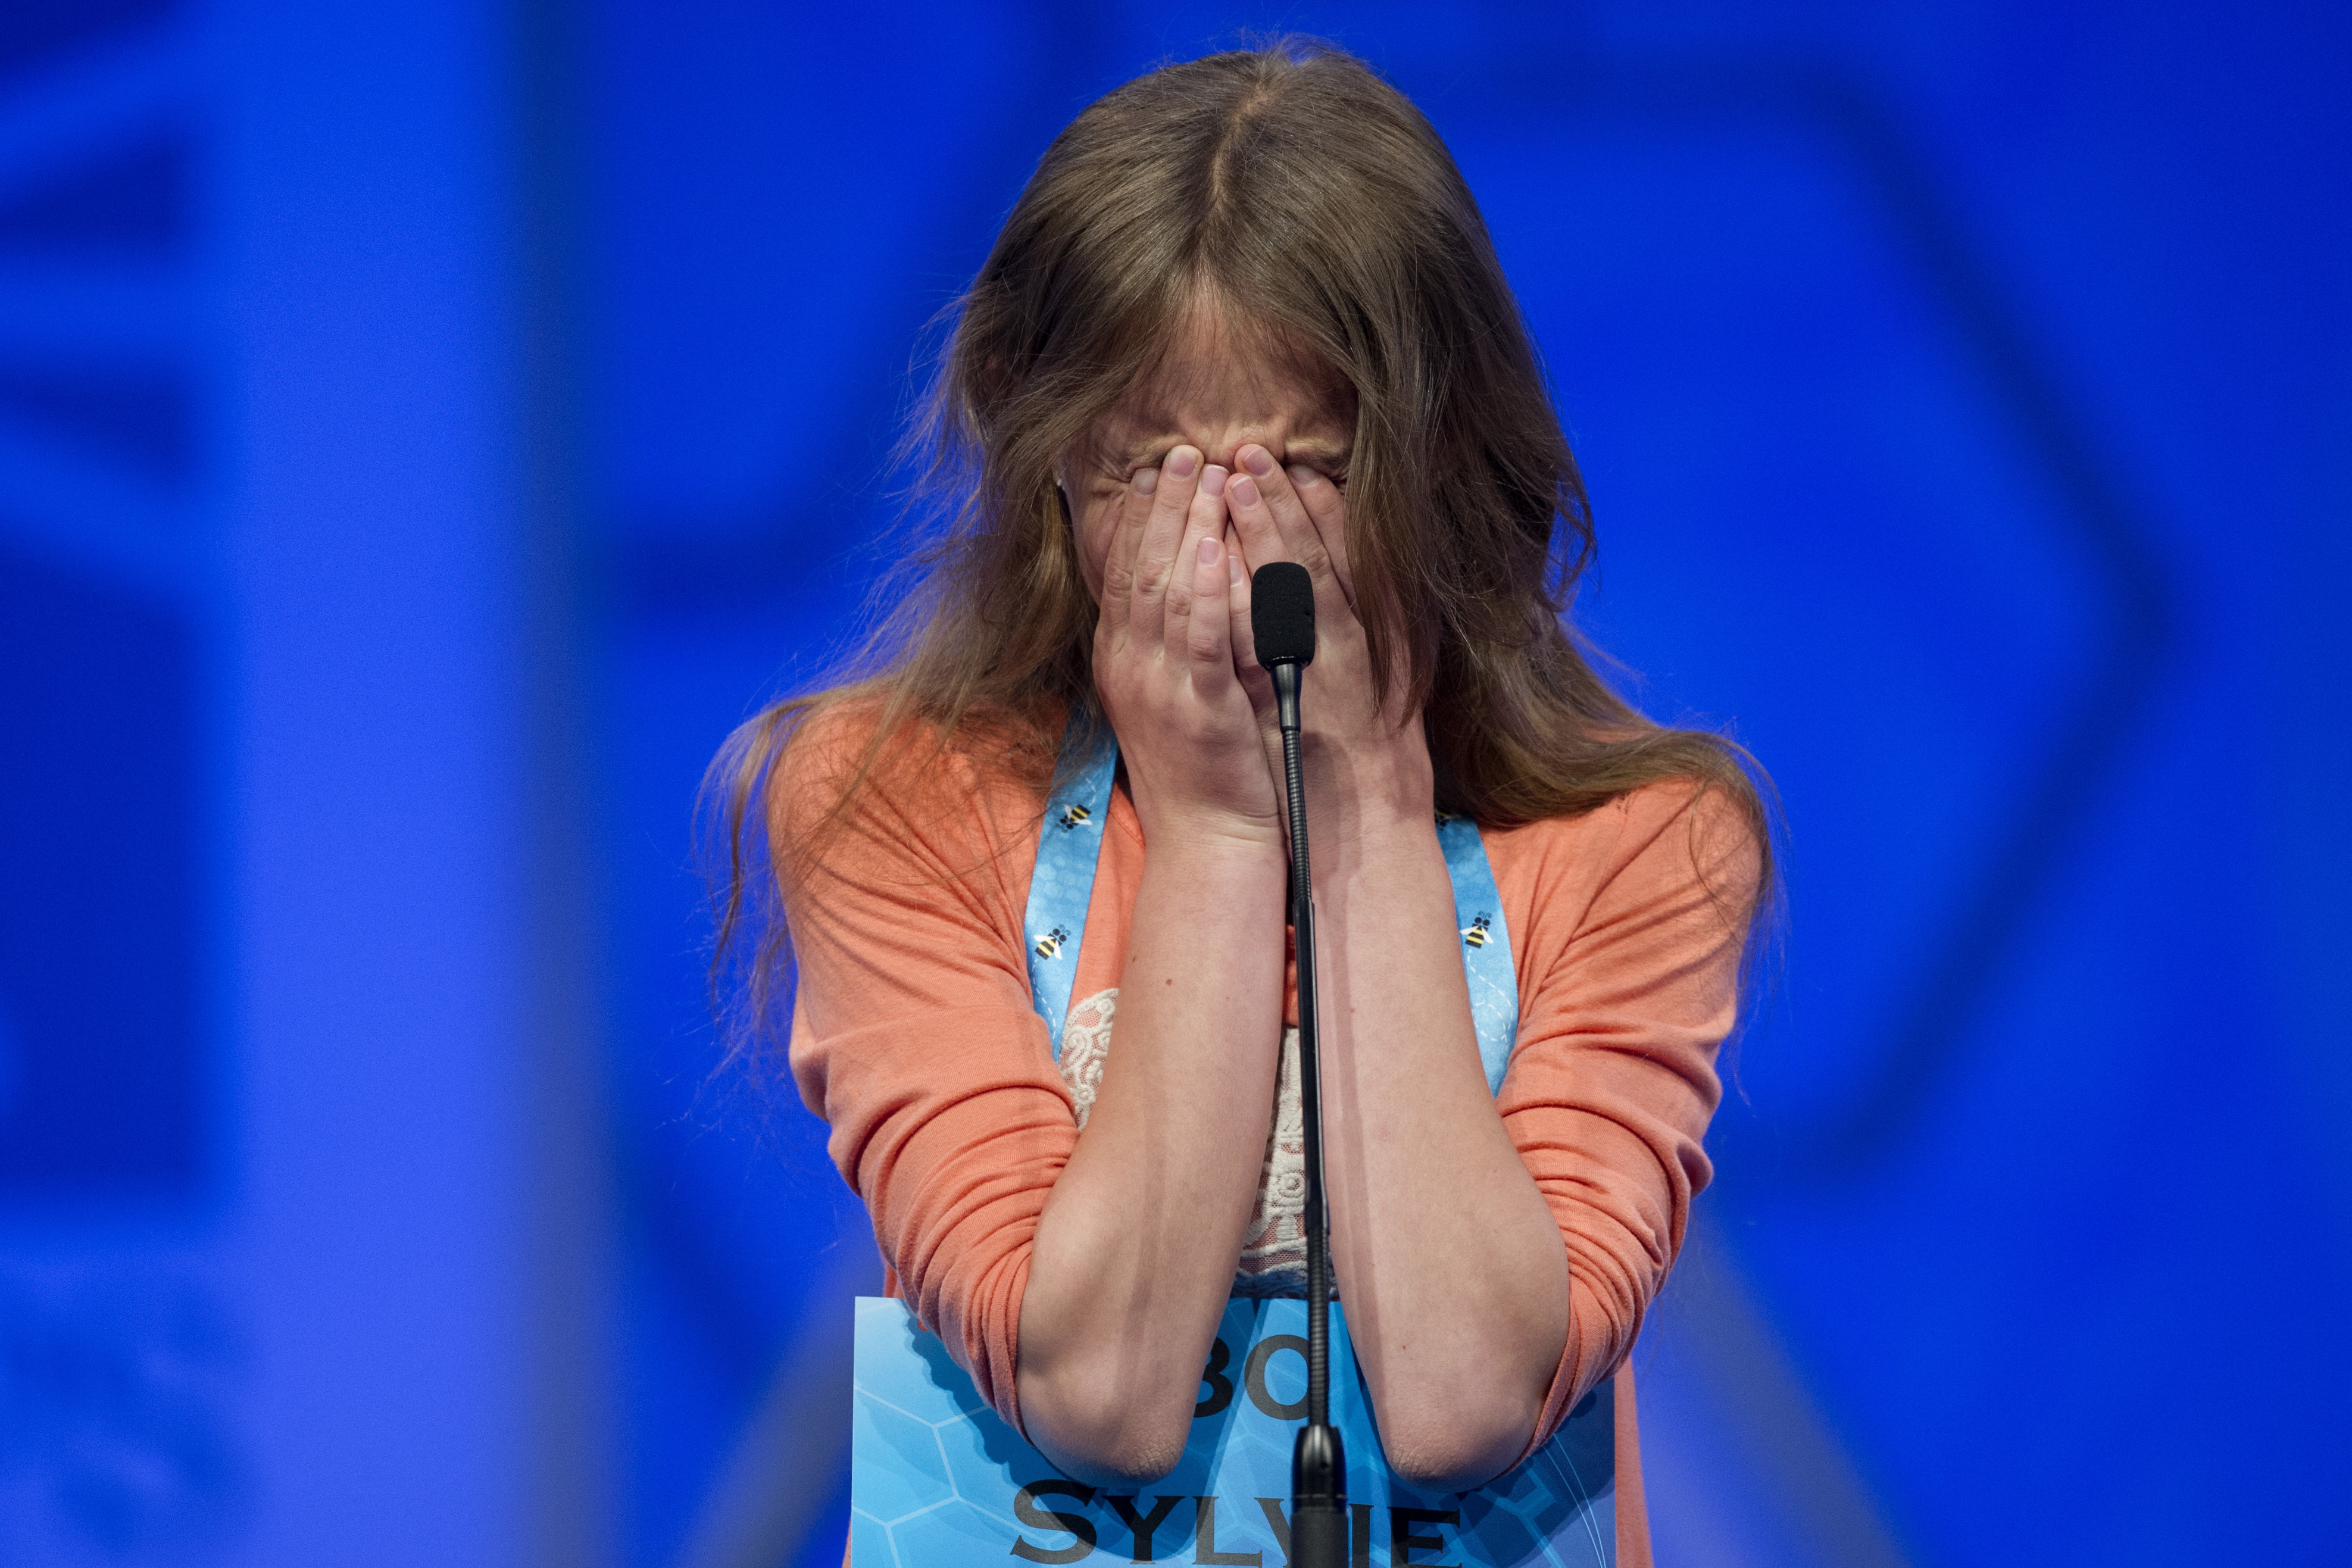 National Spelling Bee Words For 6th Graders